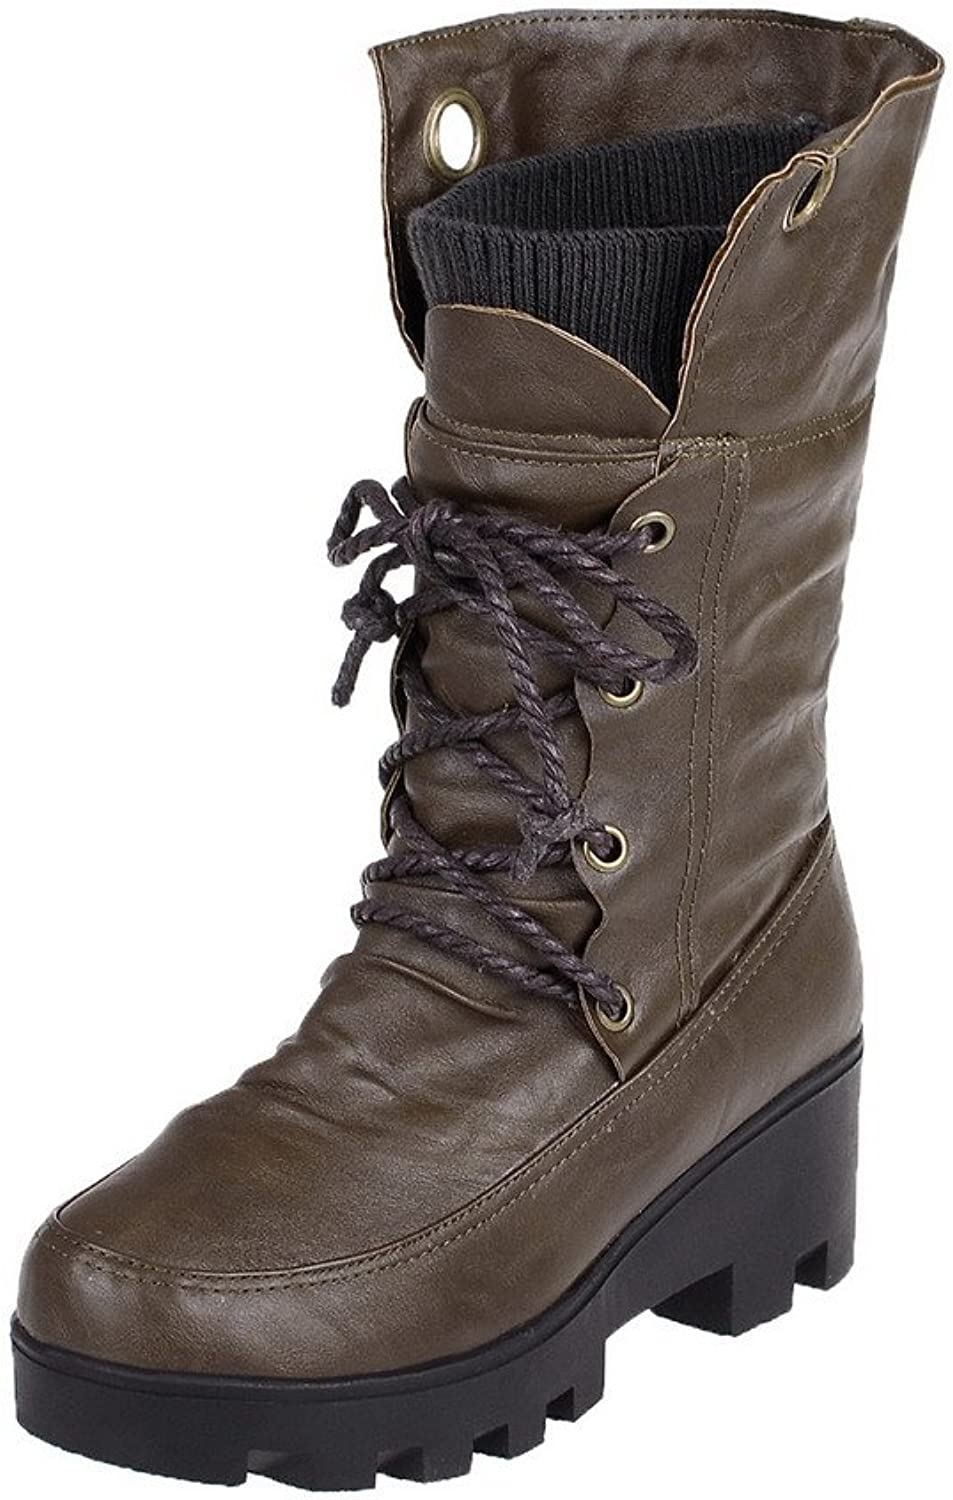 WeiPoot Women's Soft Material Lace up Round Closed Toe Kitten Heels Solid Boots